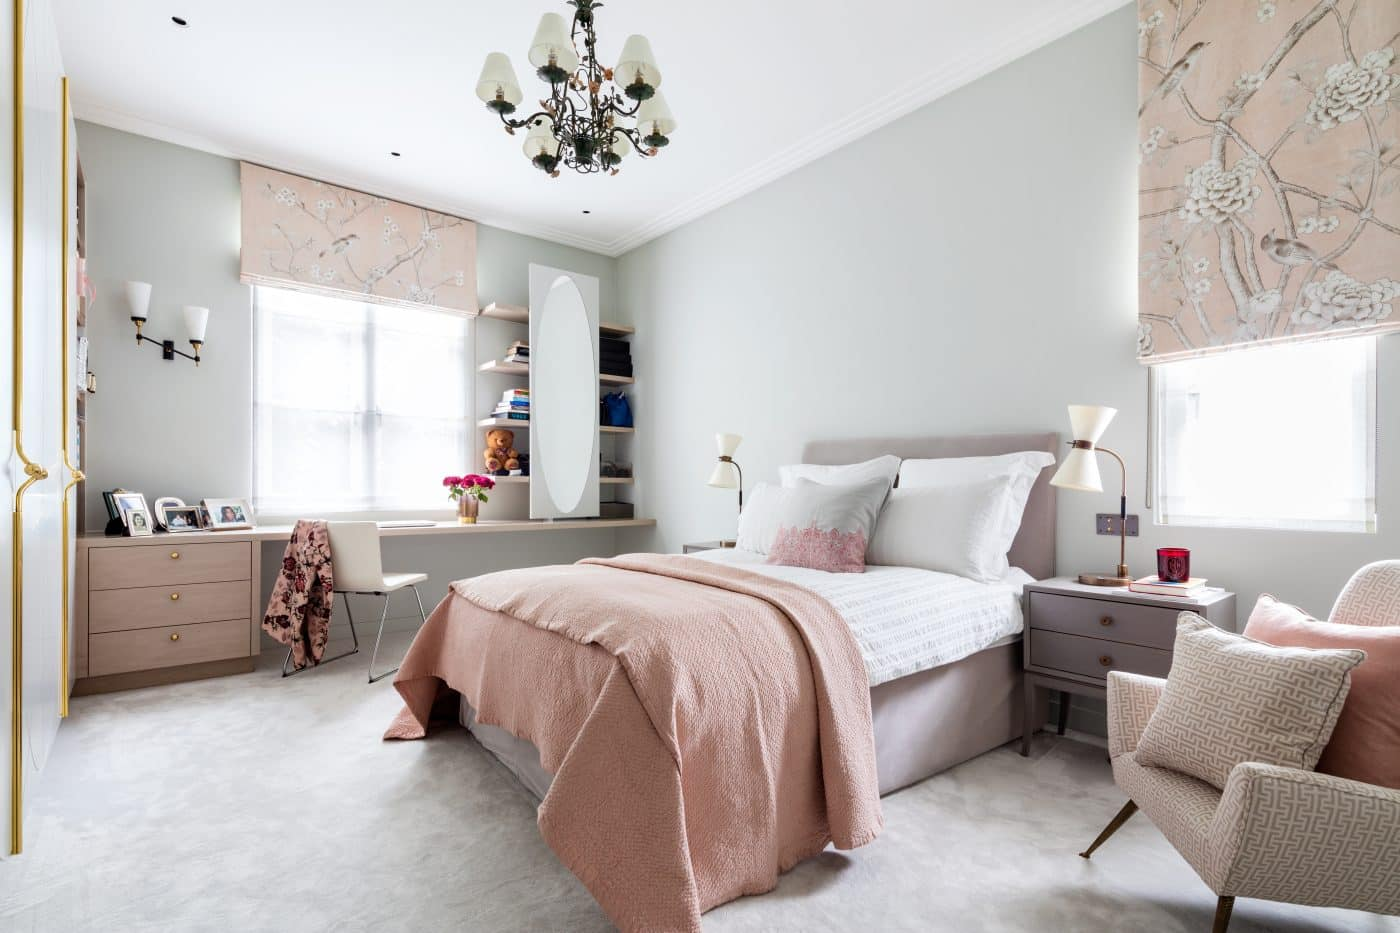 Daughter's bedroom of the London home